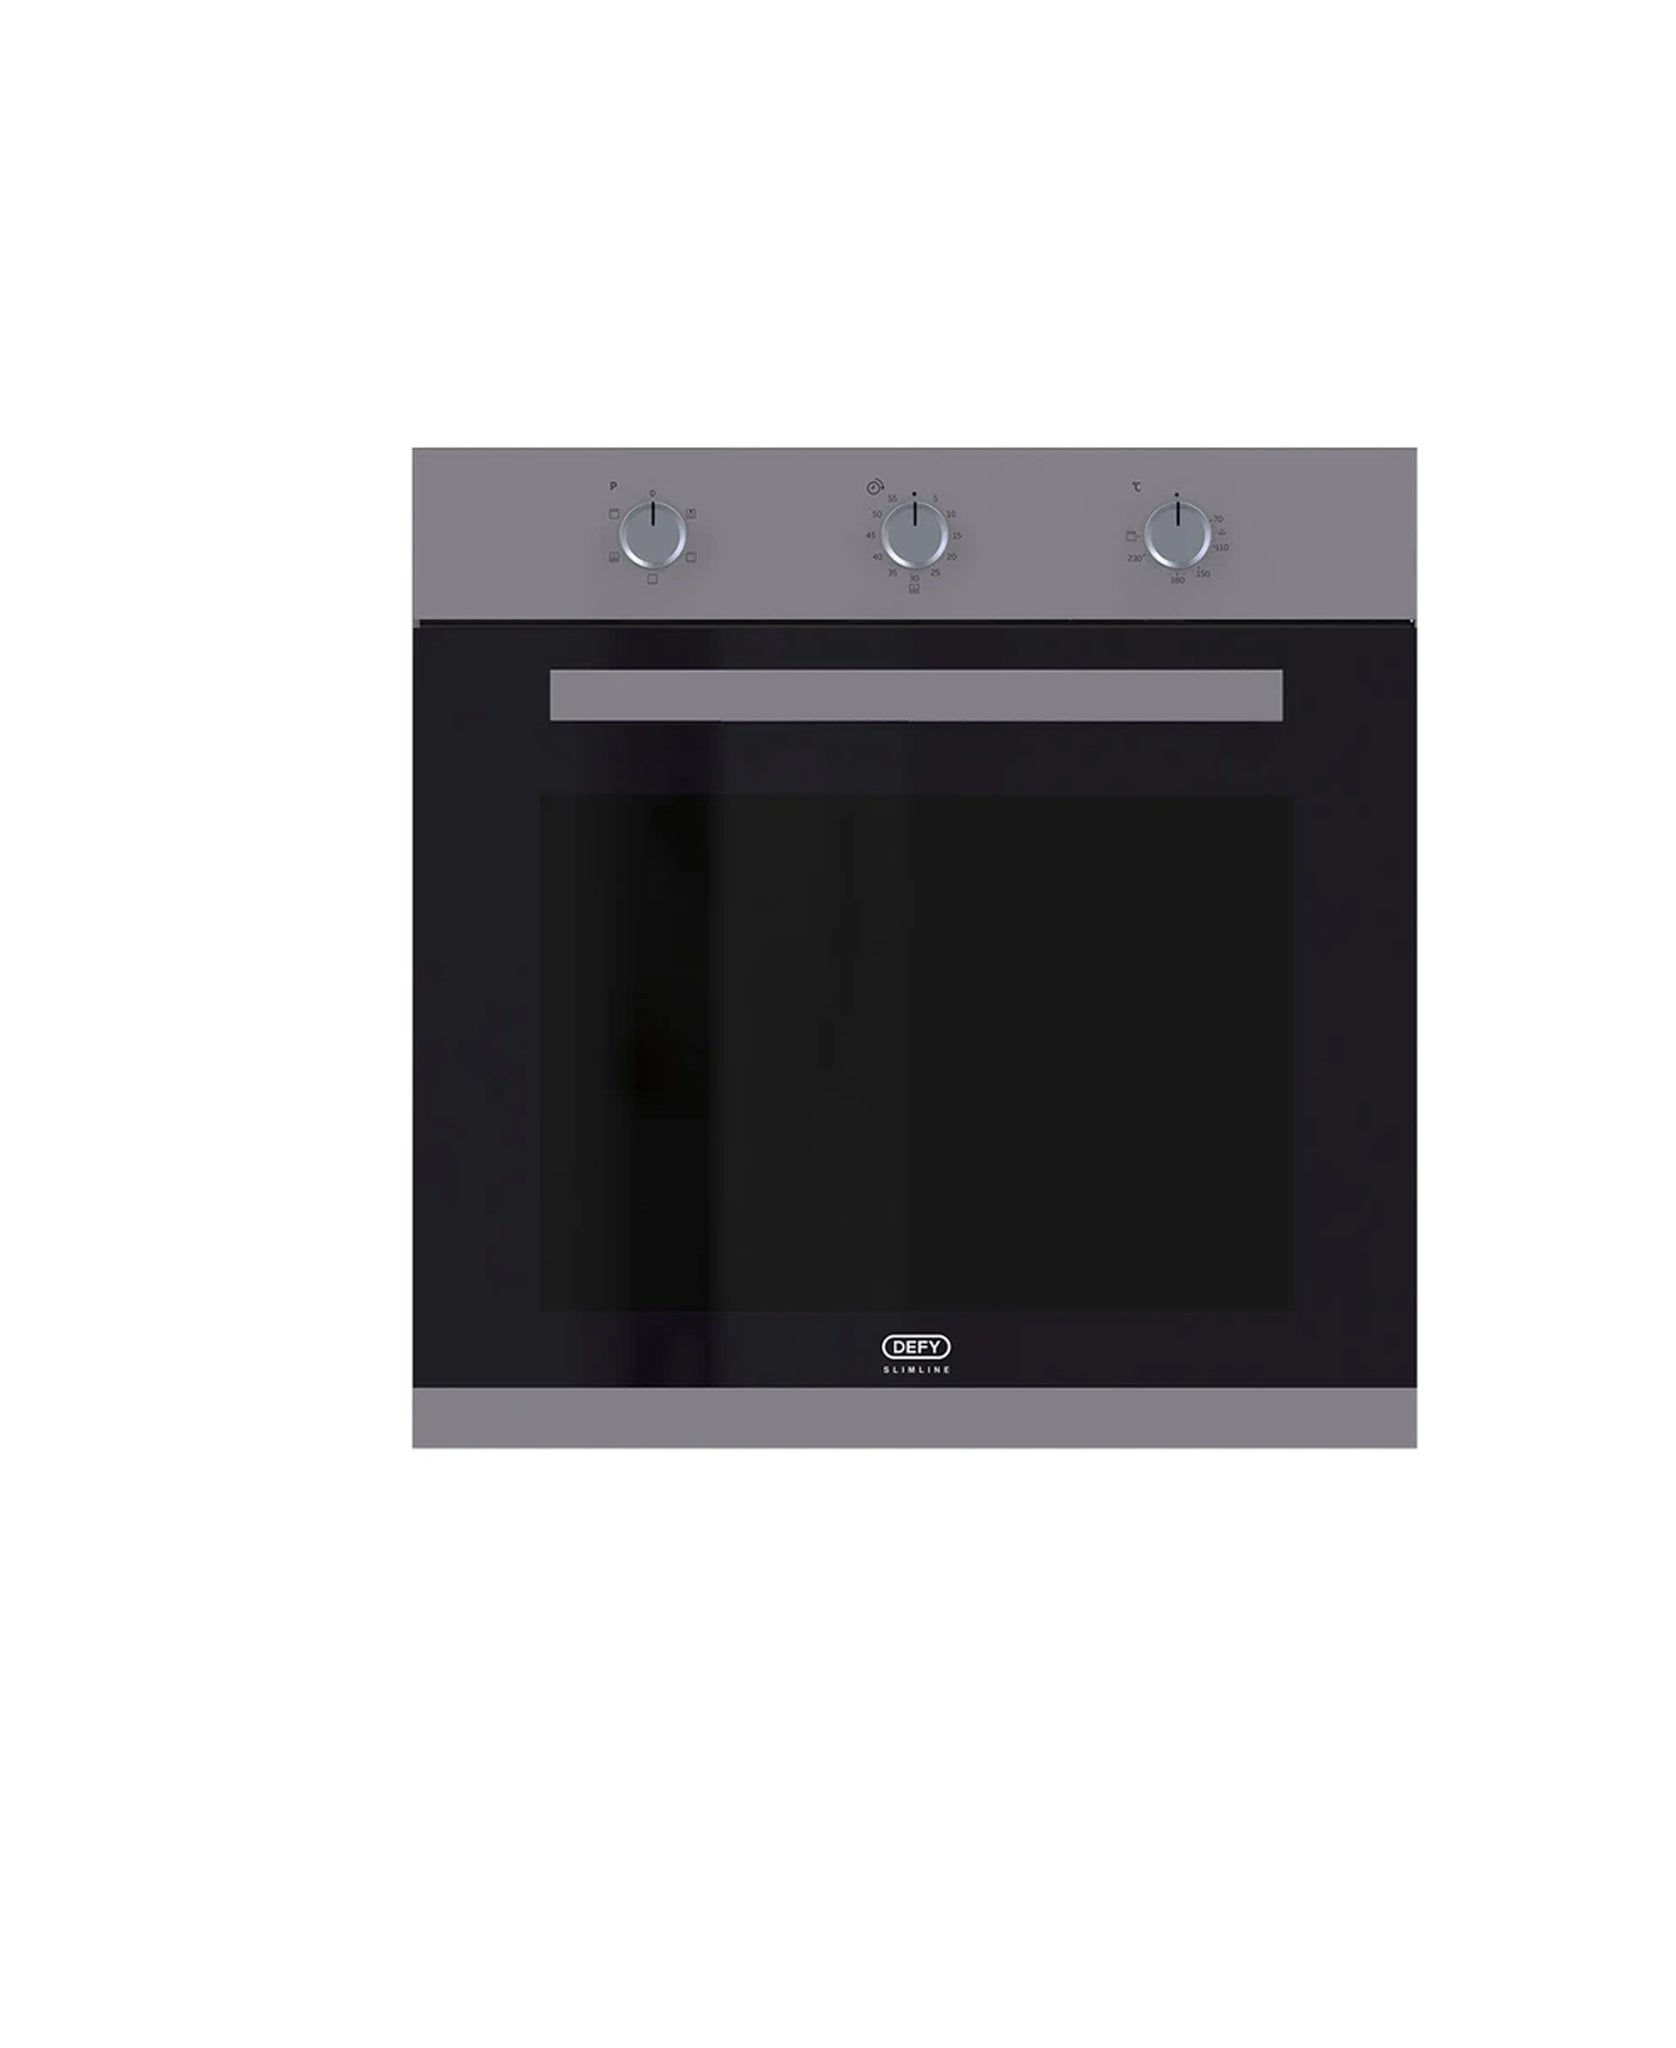 Defy Gemini Gourmet Multifunction Double Oven Black DBO486